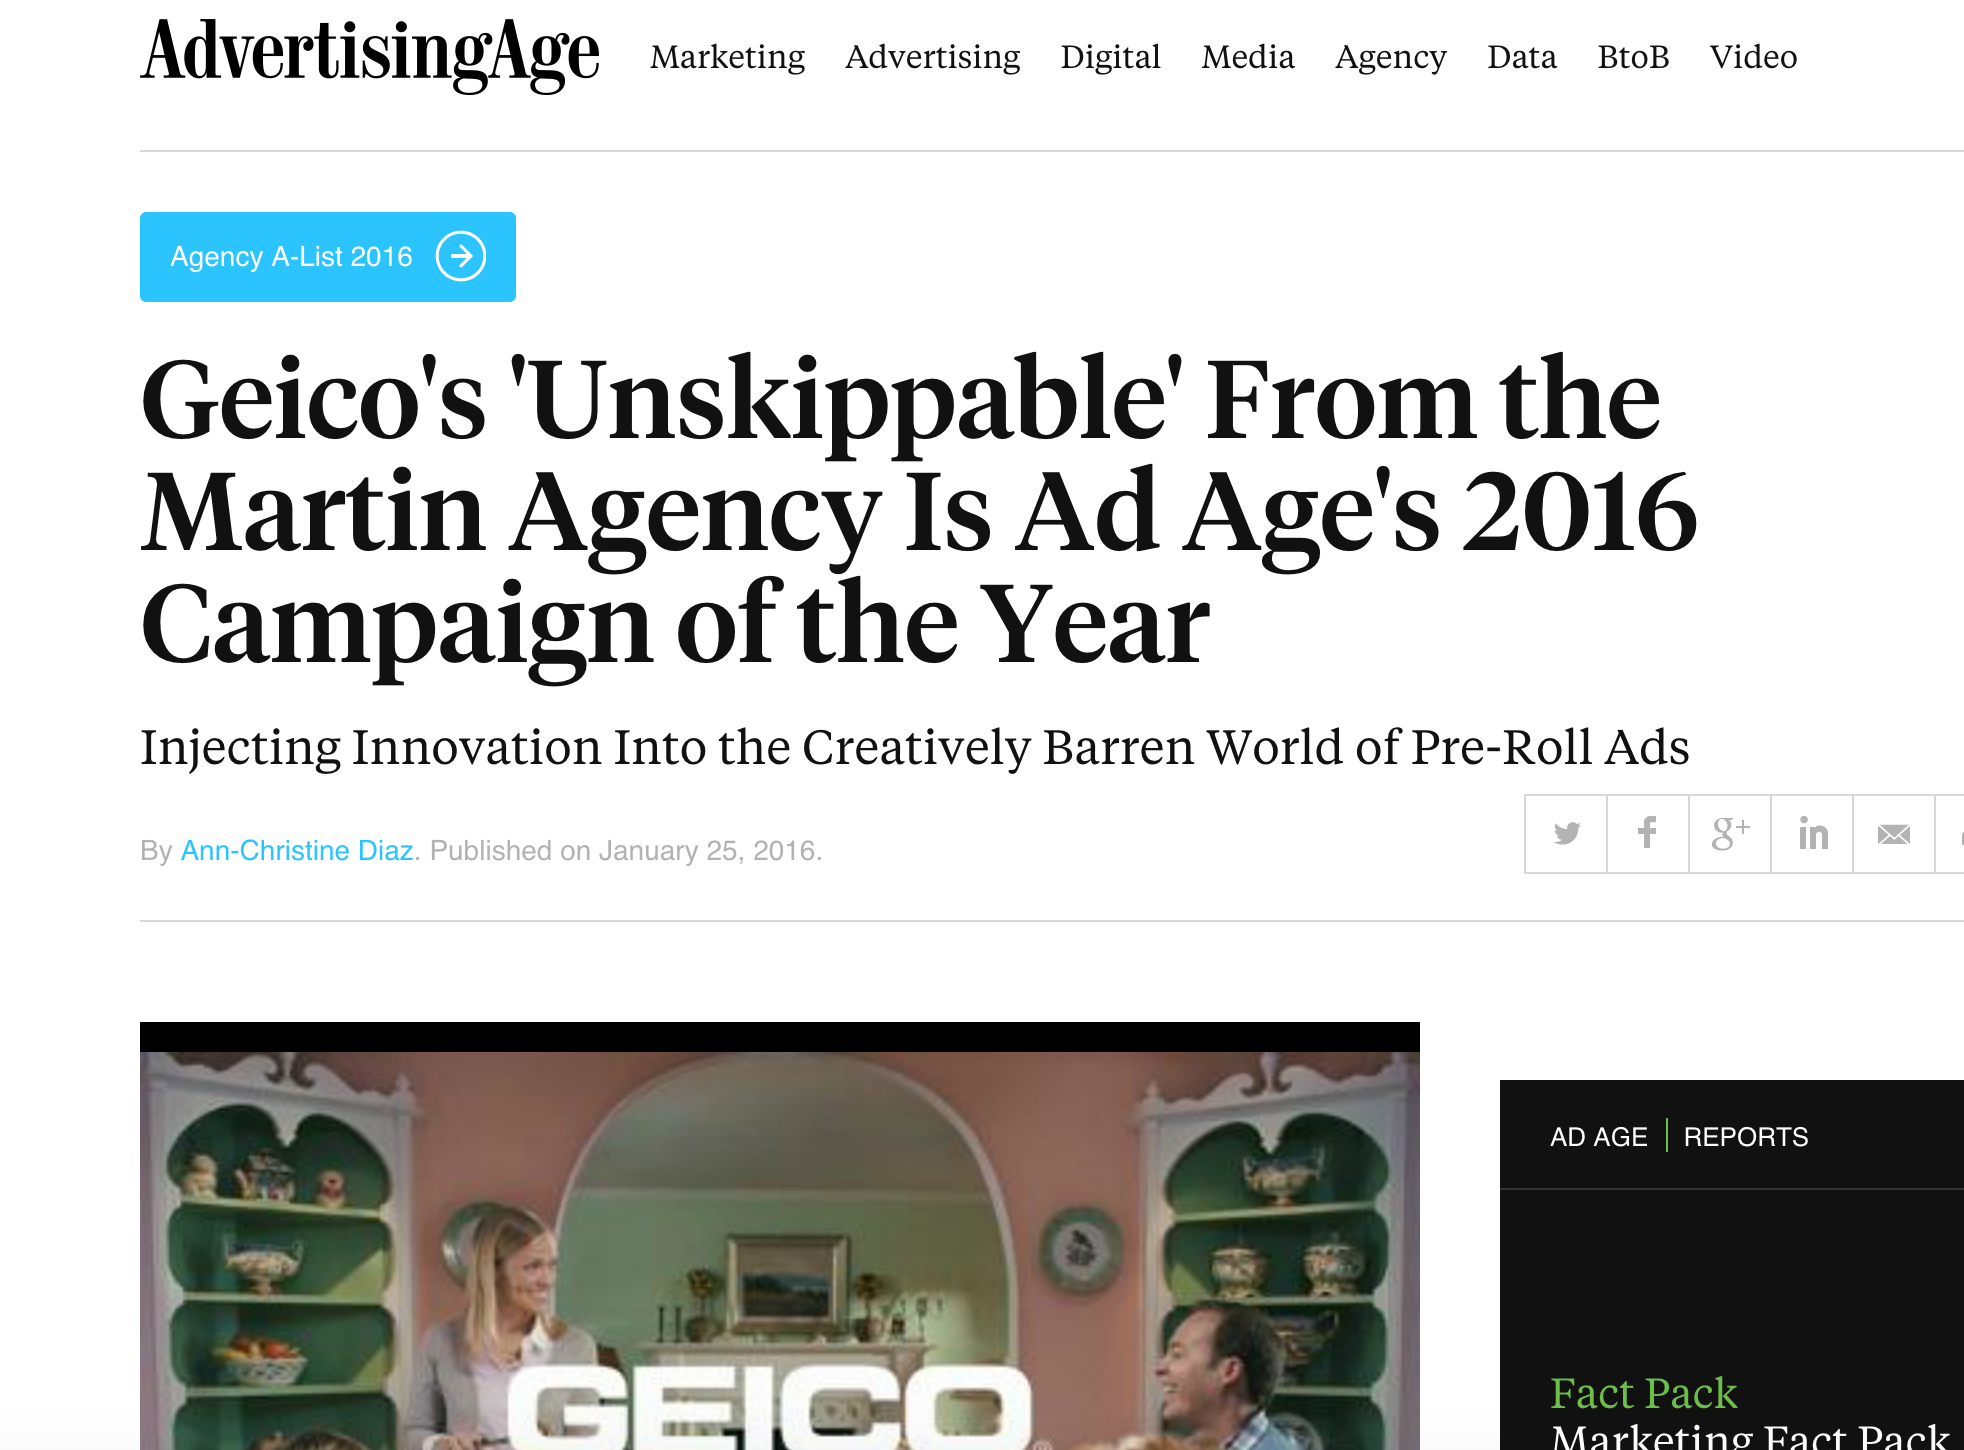 Geico's 'Unskippable' is Ad Age's 2016 Campaign of the Year